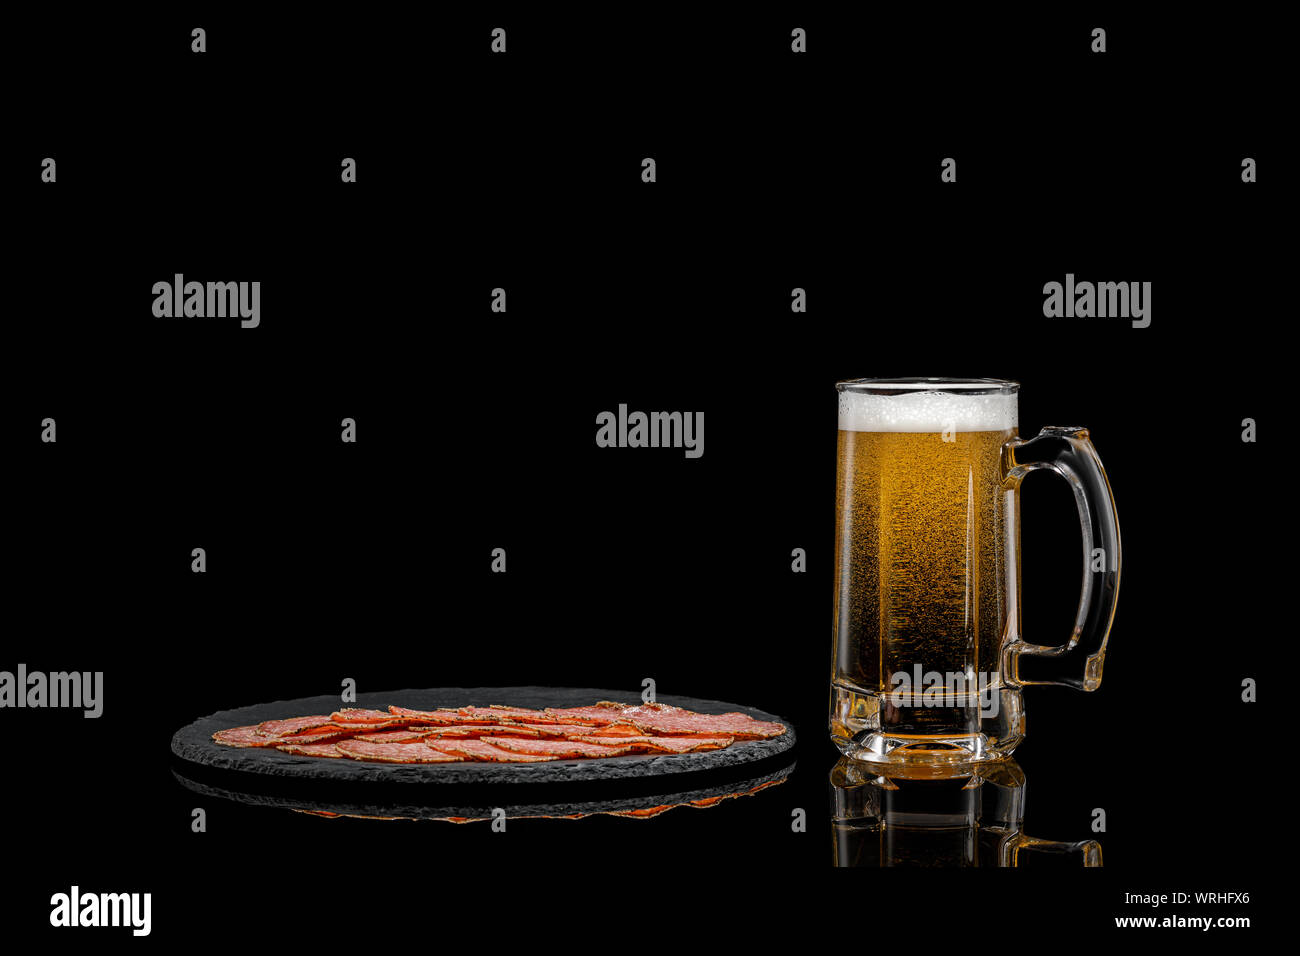 glass of beer and delicious sliced sausages on stone boardon black background. copy space Stock Photo